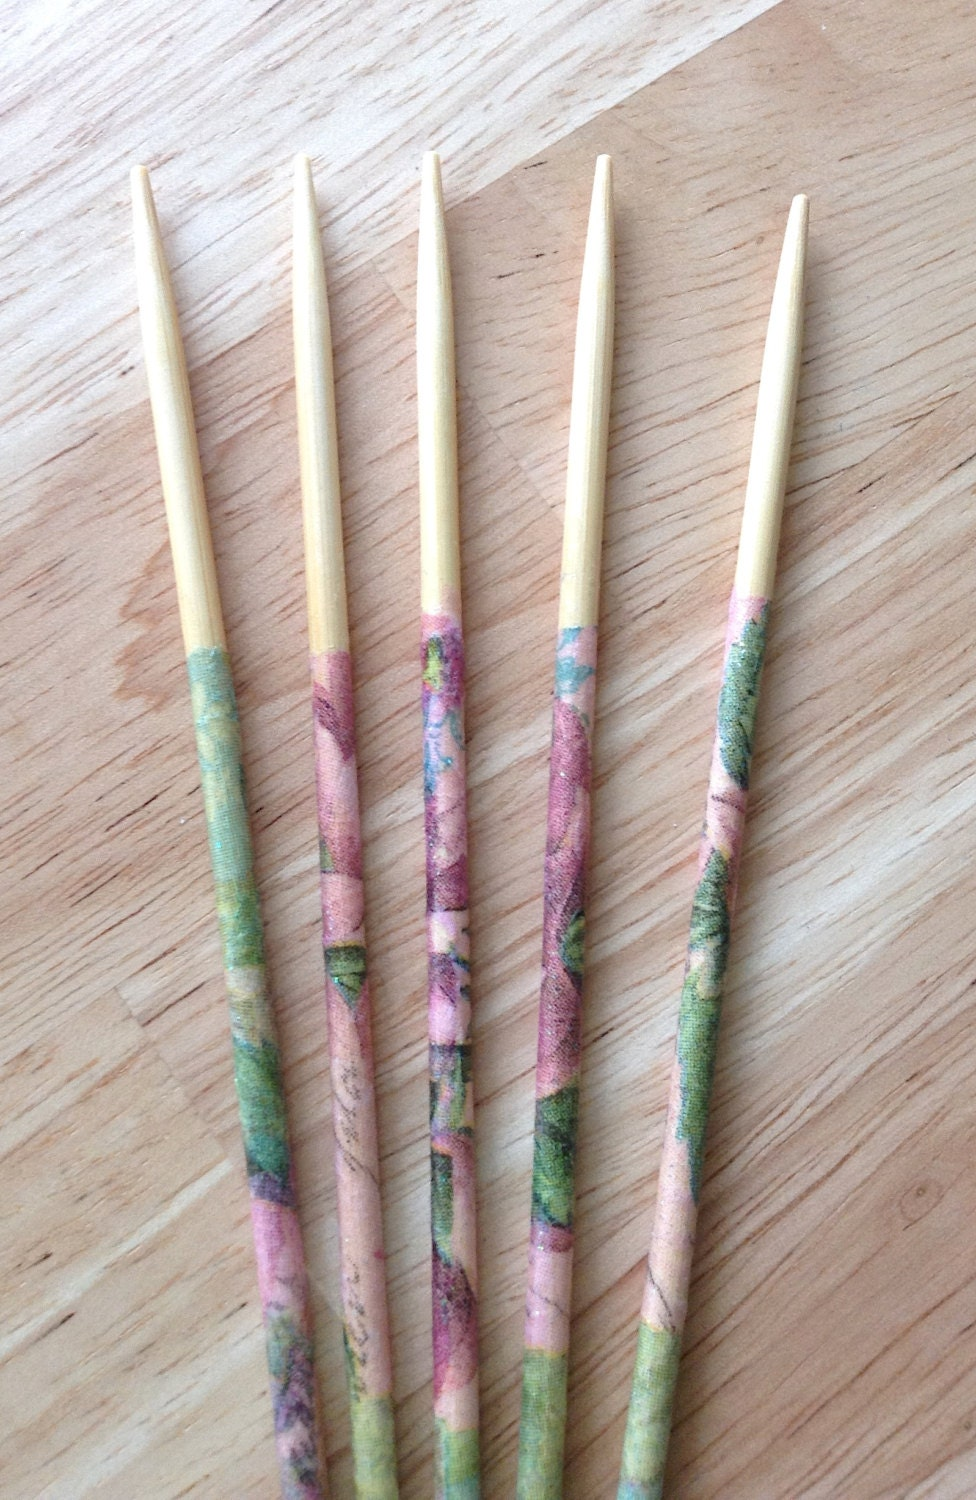 Decoupaged Double pointed knitting needles